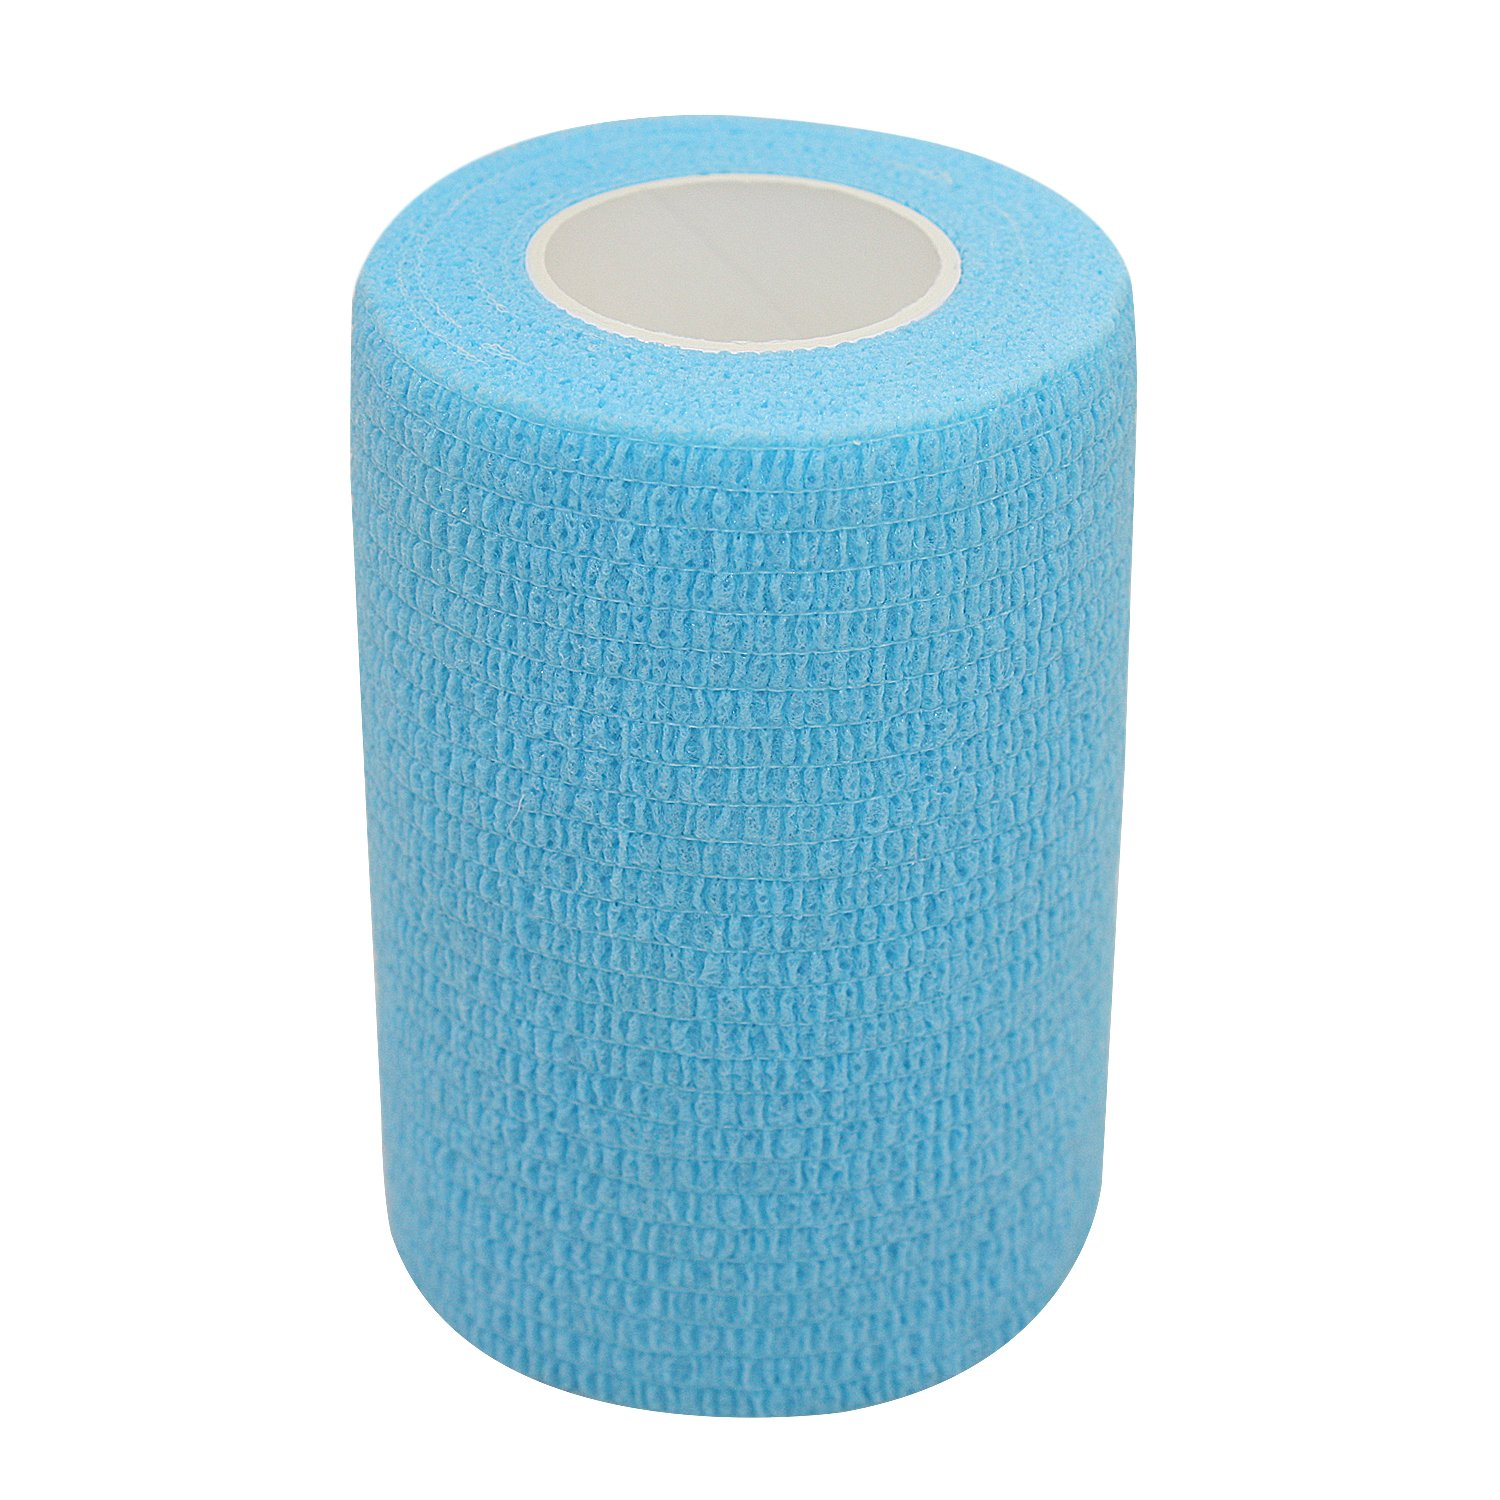 COMOmed Self Adherent Cohesive Bandage Latex FDA Approved 3''x5 Yards First Aid Ace Bandages Stretch Sport Athletic Wrap Vet Tape for Wrist Ankle Sprain and Swelling,Light Blue(6 rolls) by COMOmed